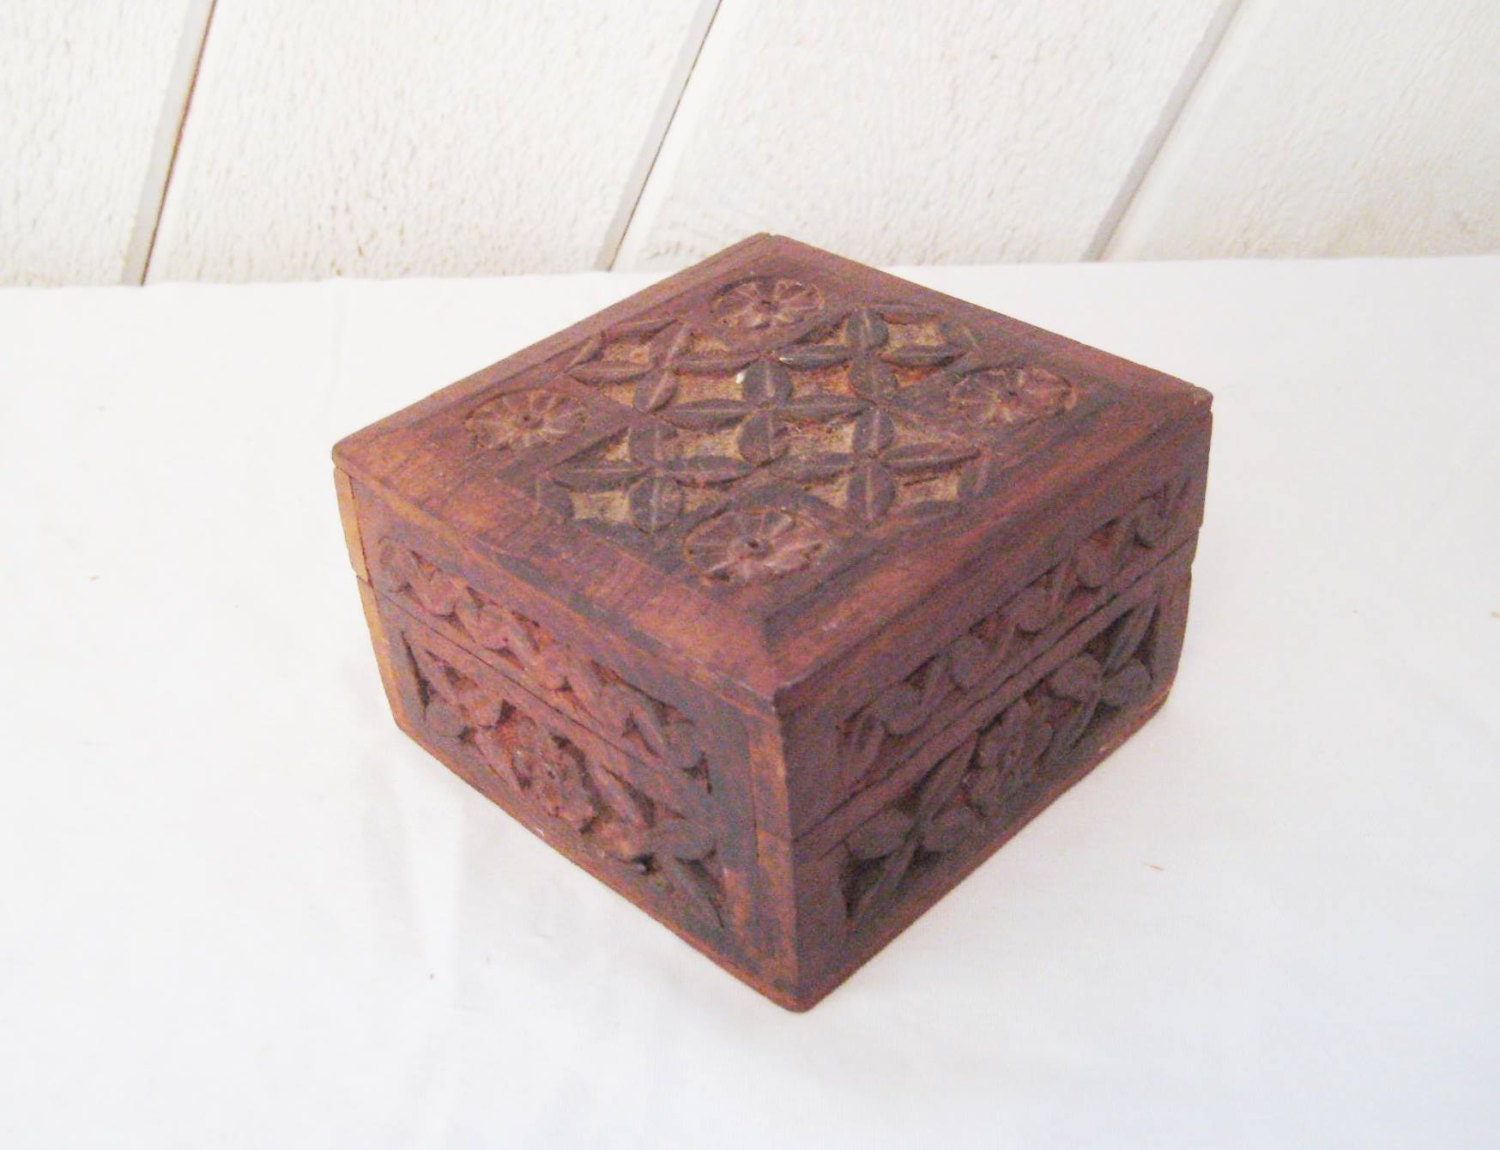 Hand carved small box rustic wood box decorative box hinged - Small rustic wooden boxes ...